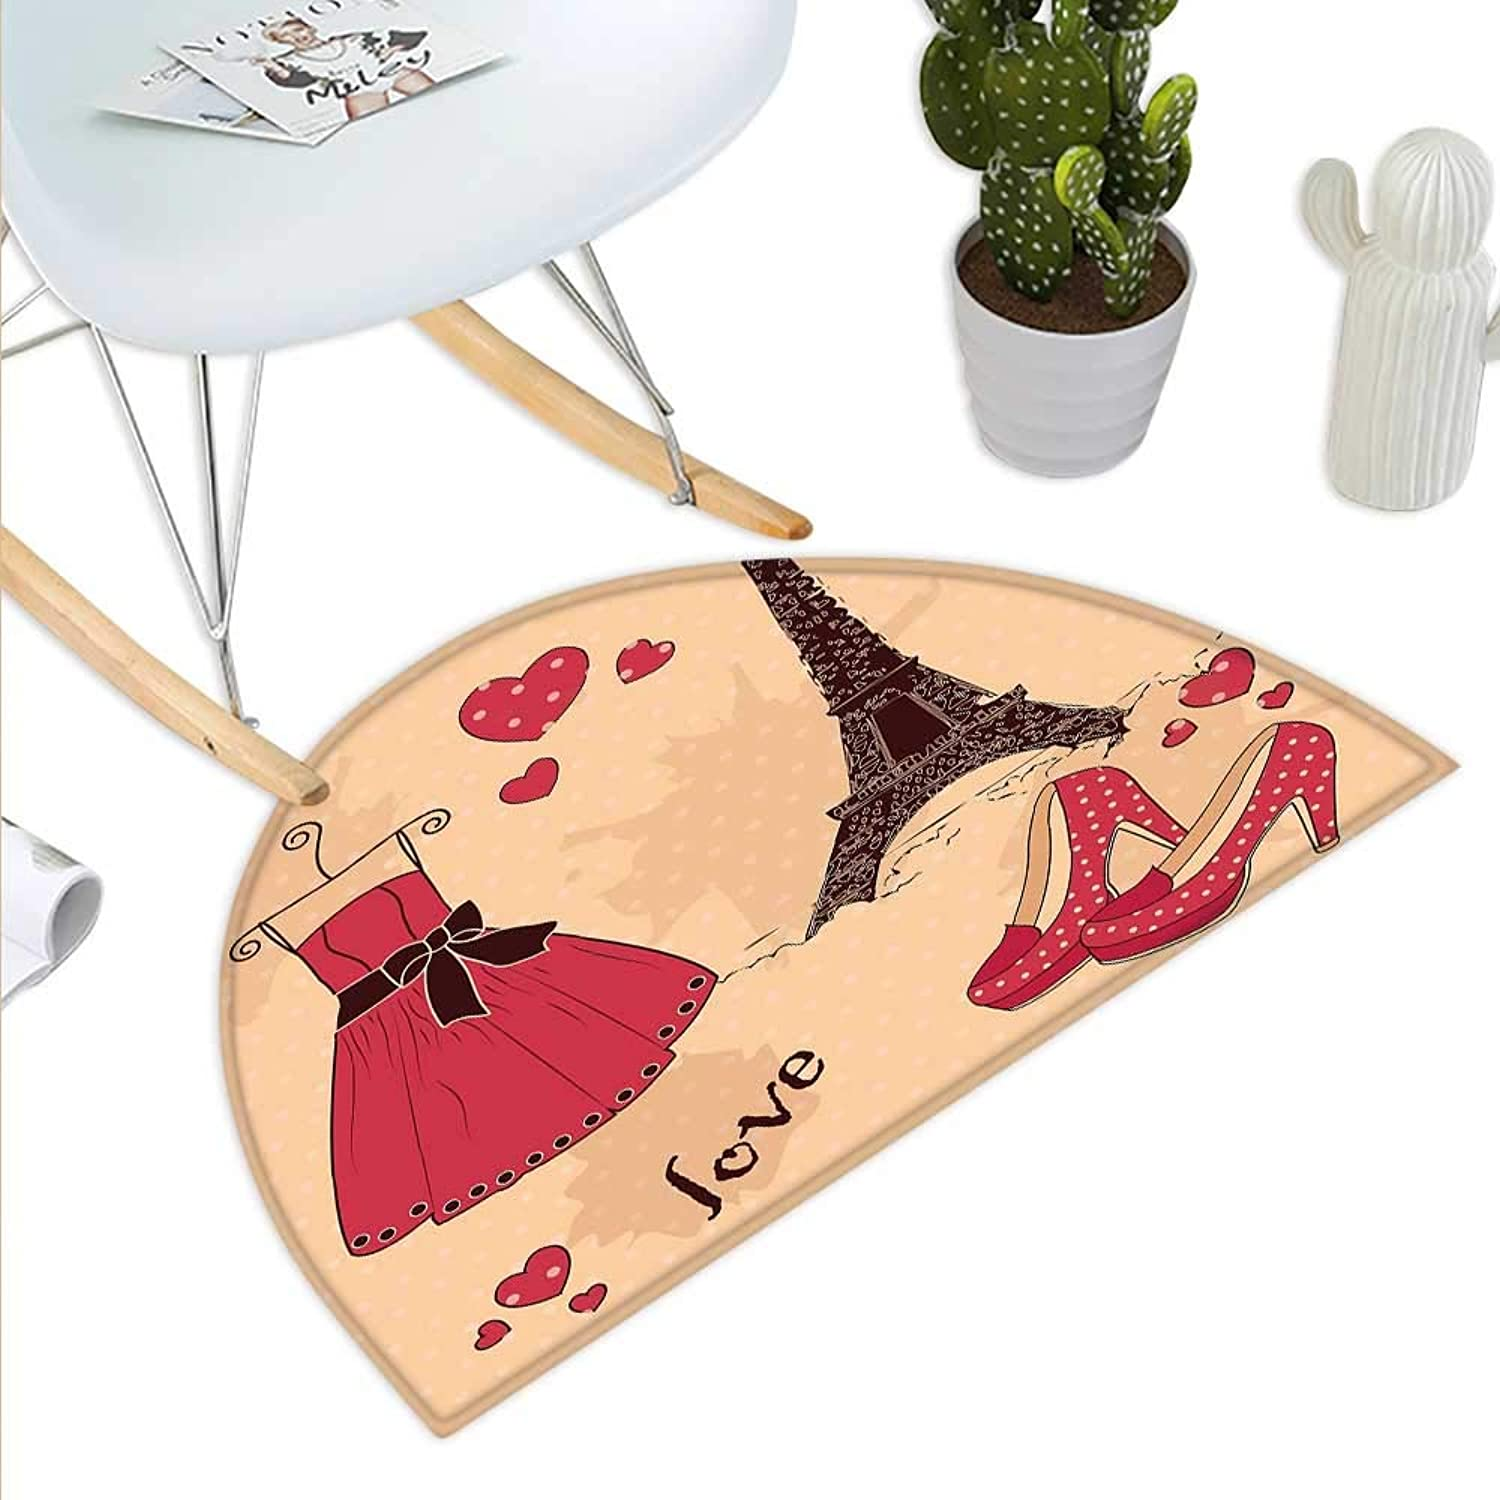 Heels and Dresses Half Round Door mats Paris Boutique French Retro Dress shoes Eiffel Tower Bathroom Mat H 39.3  xD 59  Dark Brown Pink Pale Salmon